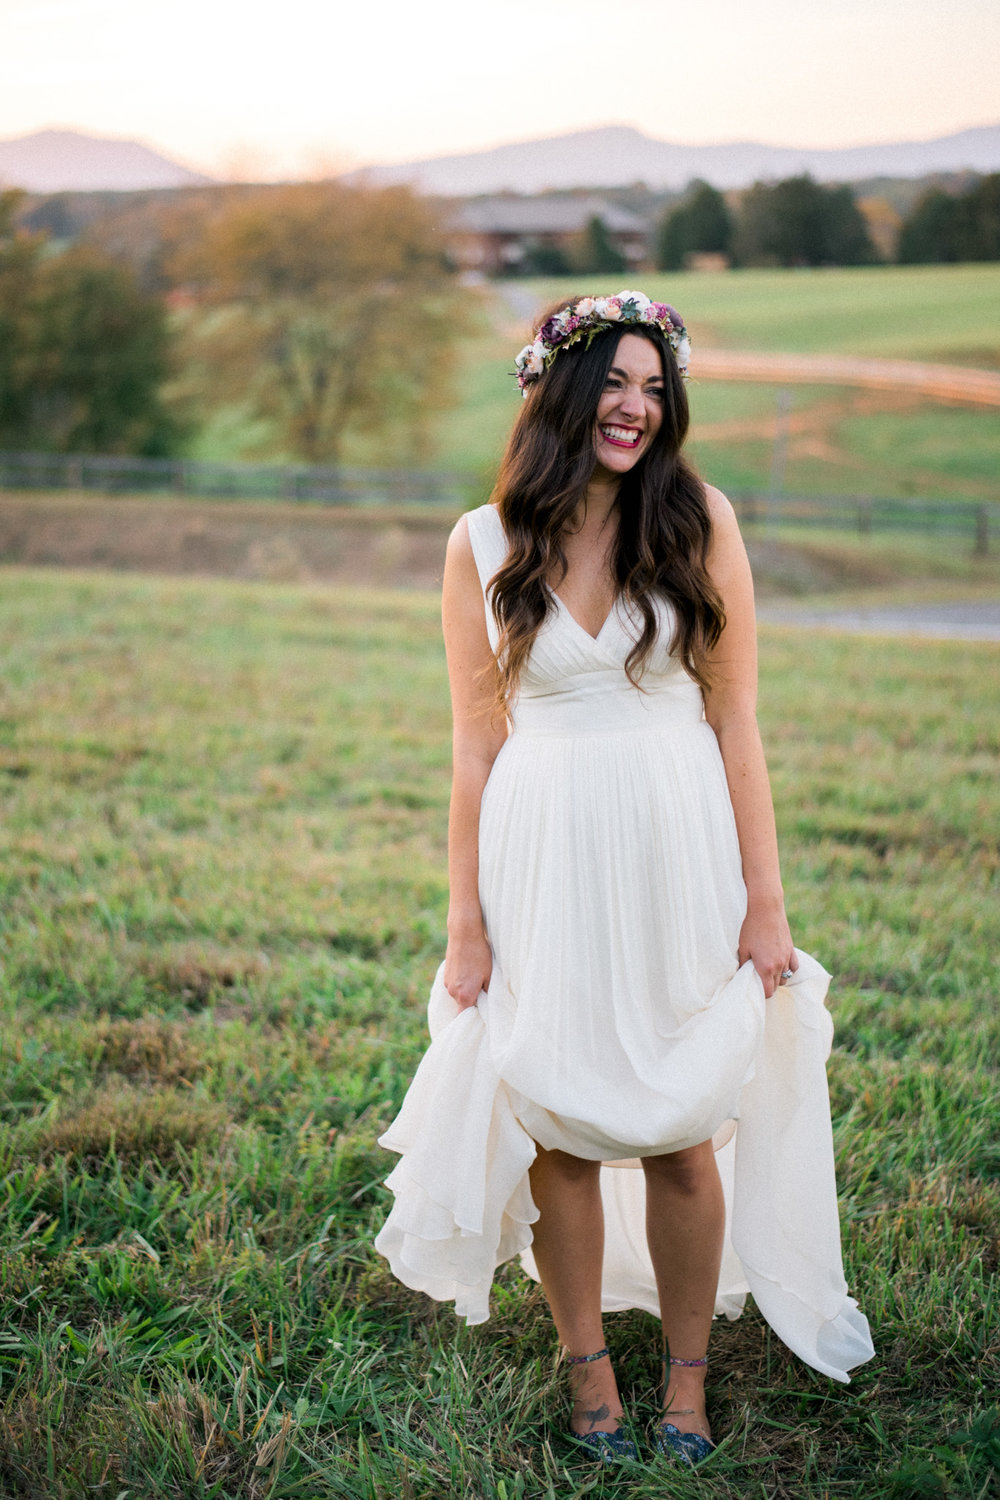 The_Trivium_Estate_Forest_VA_Wedding_Flower_Crown_boho_wedding_classic_wedding_Virginia_Wedding_photographer102.jpg